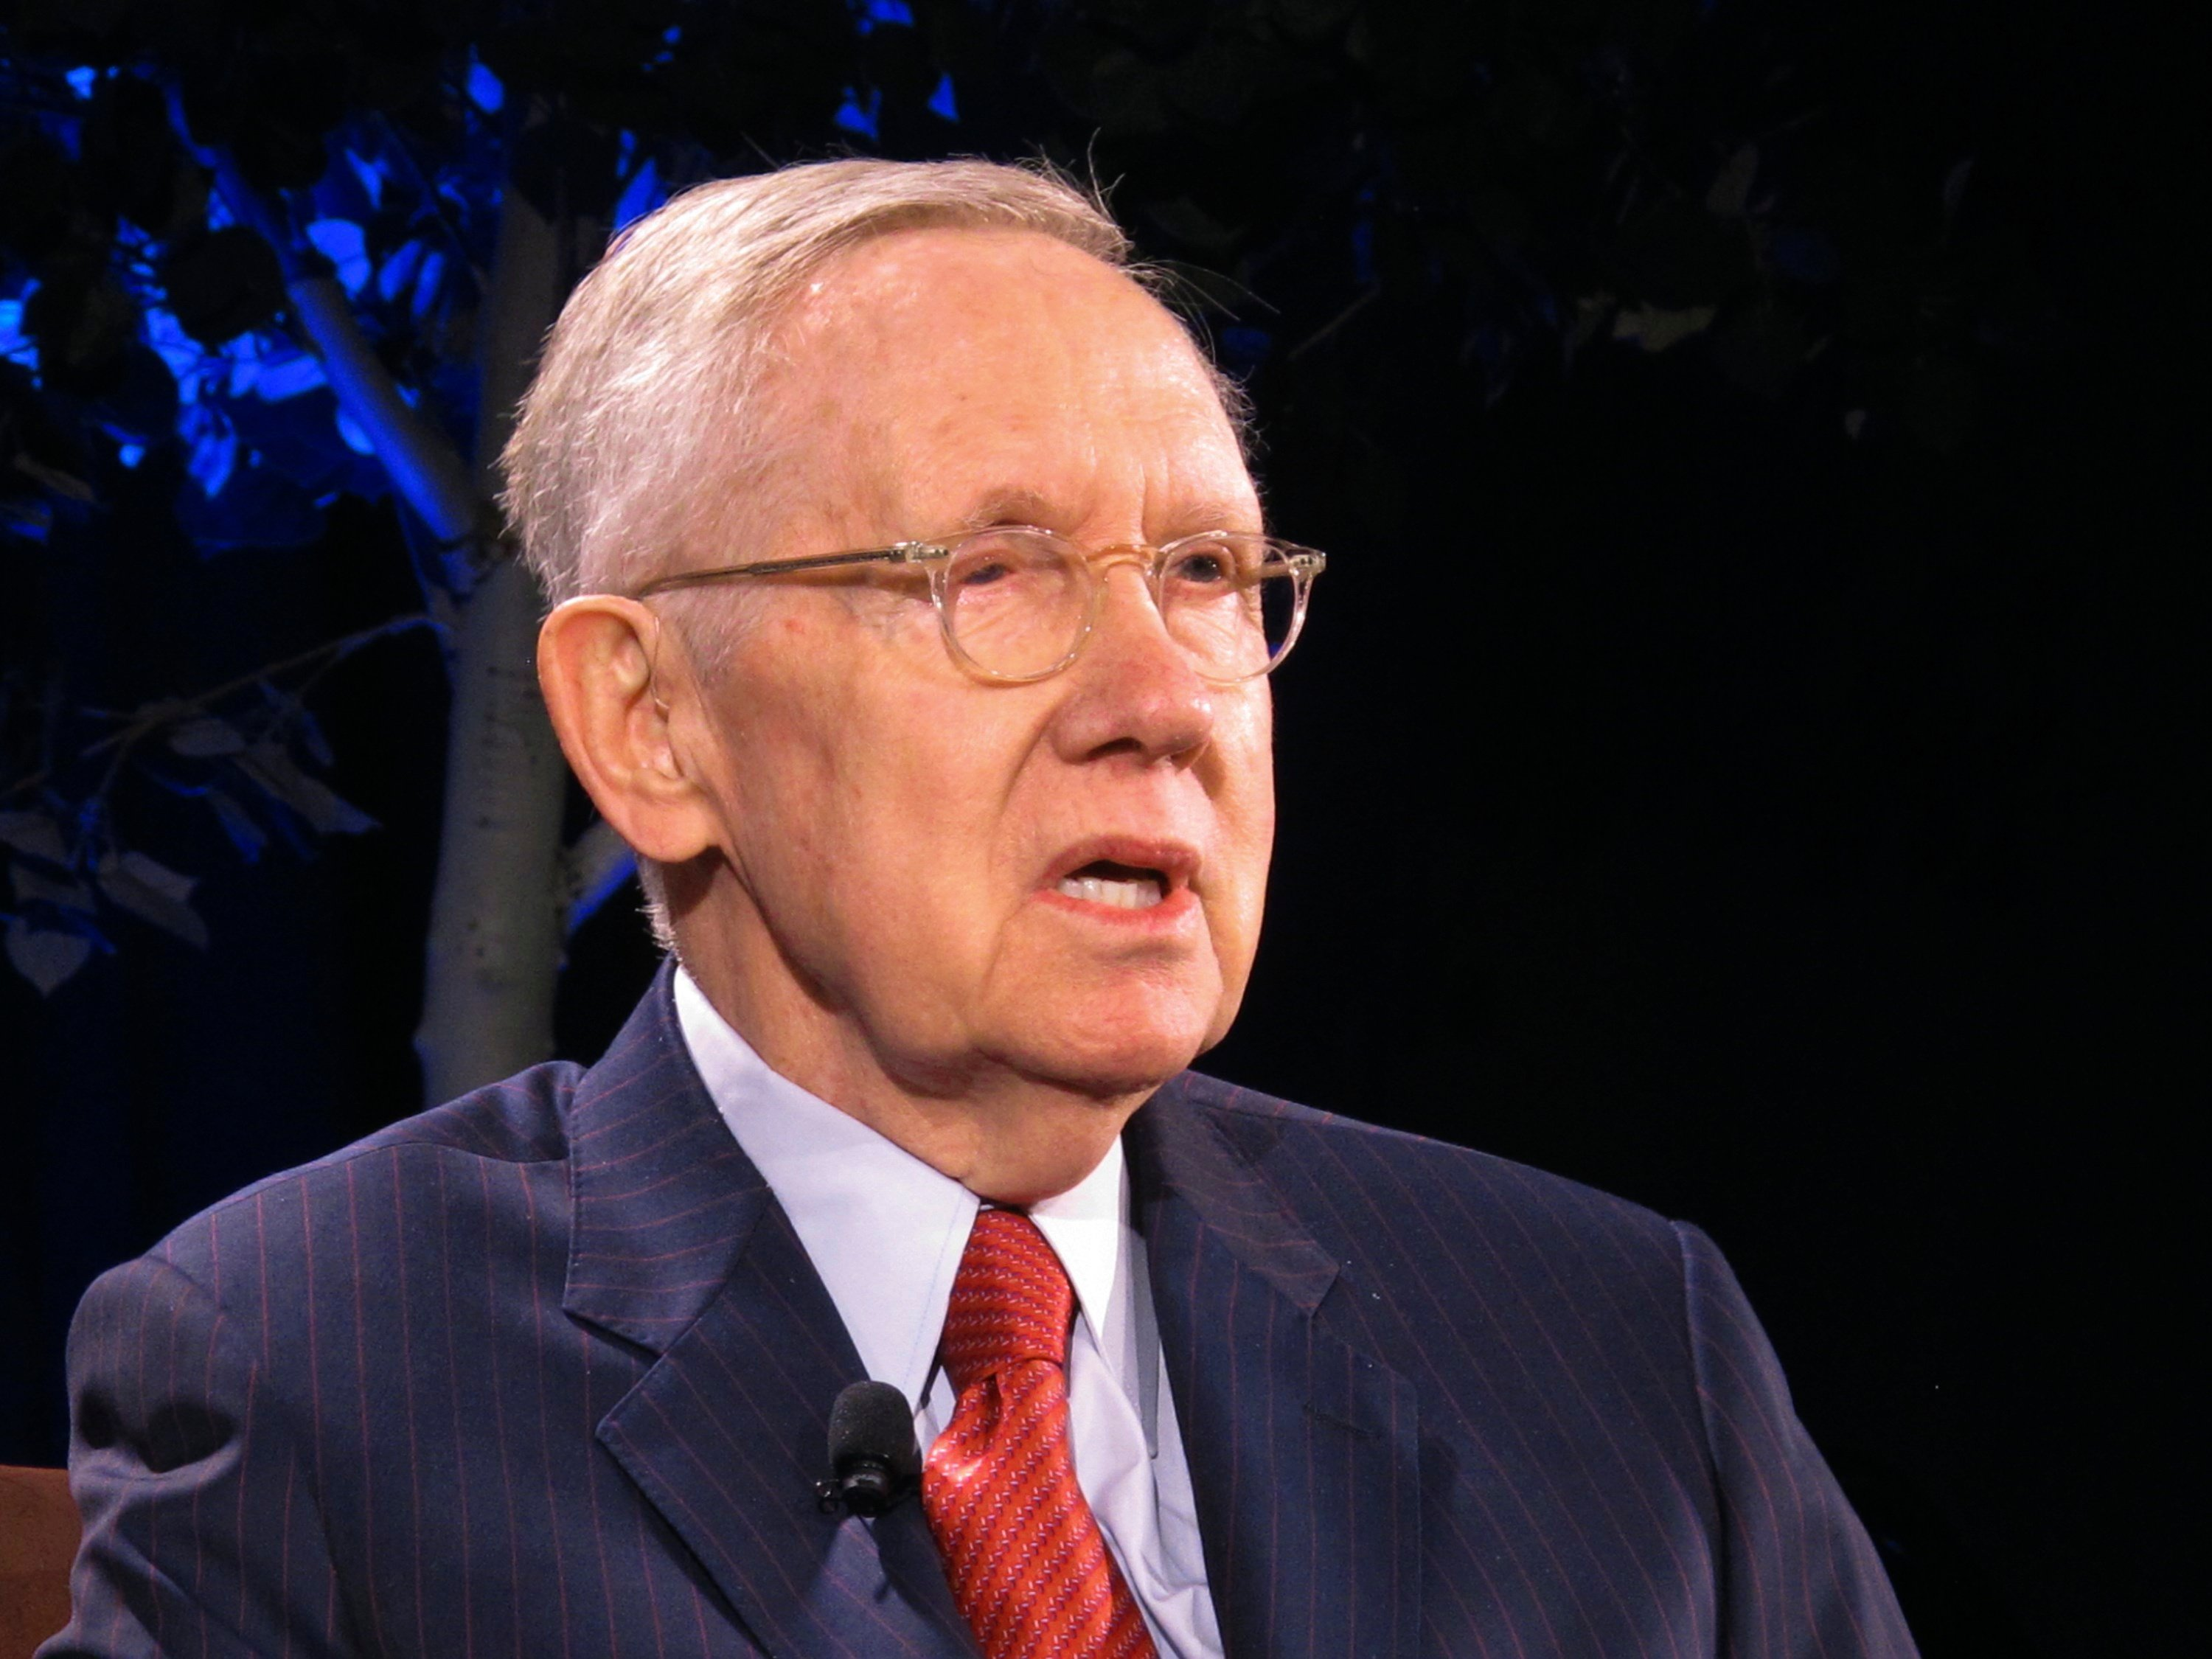 Former Sen. Harry Reid Undergoes Surgery for Pancreatic Cancer